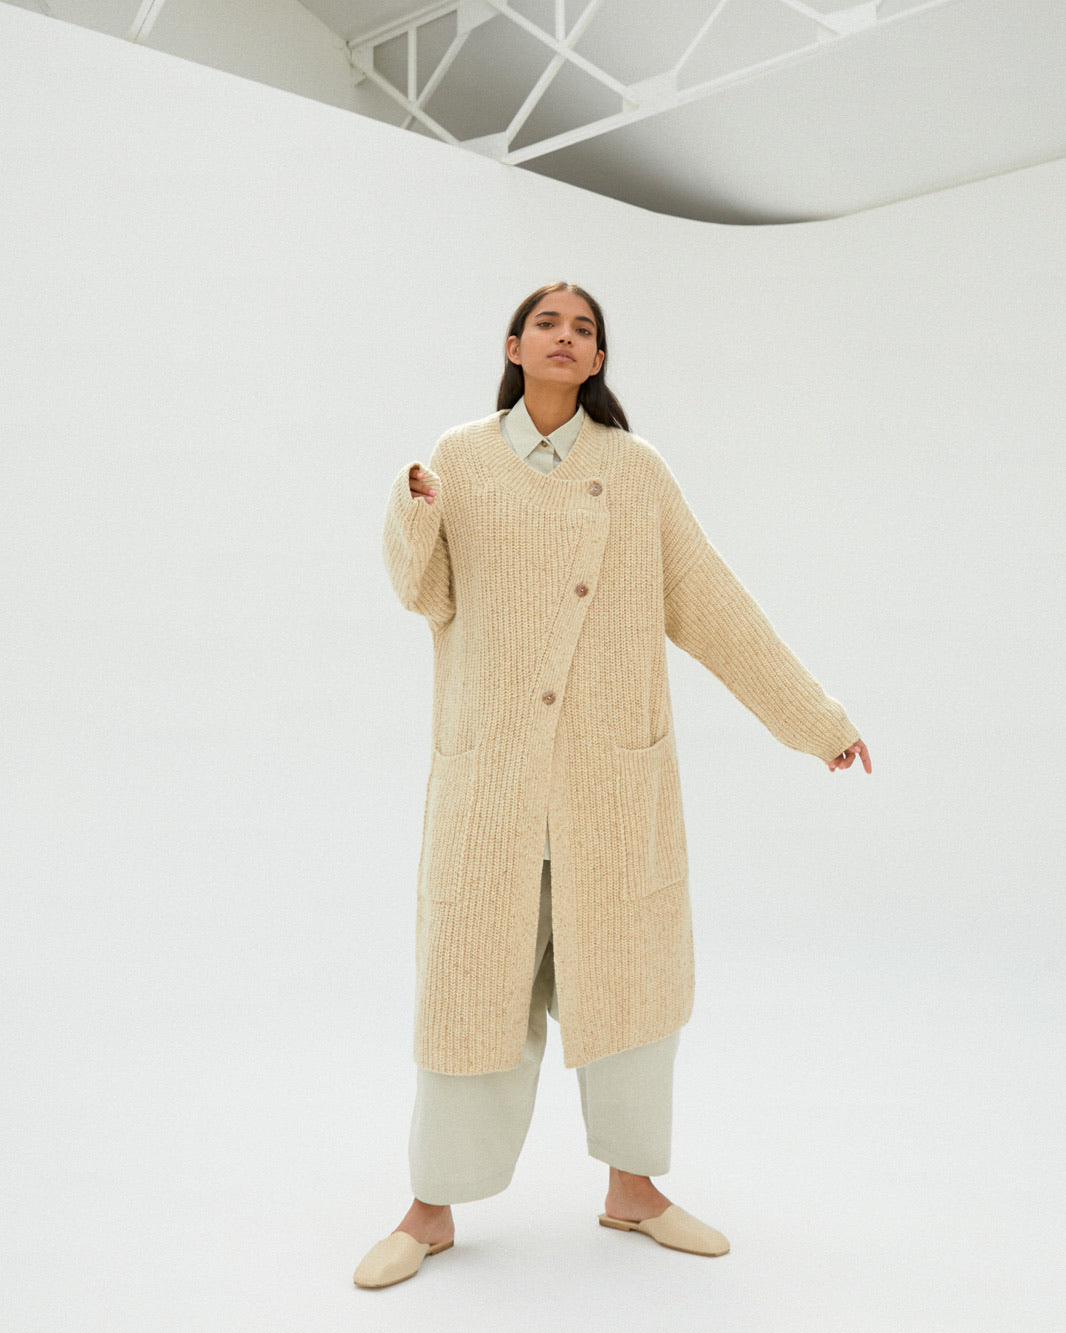 Chunky Soft Wool Knit Coat in Natural.